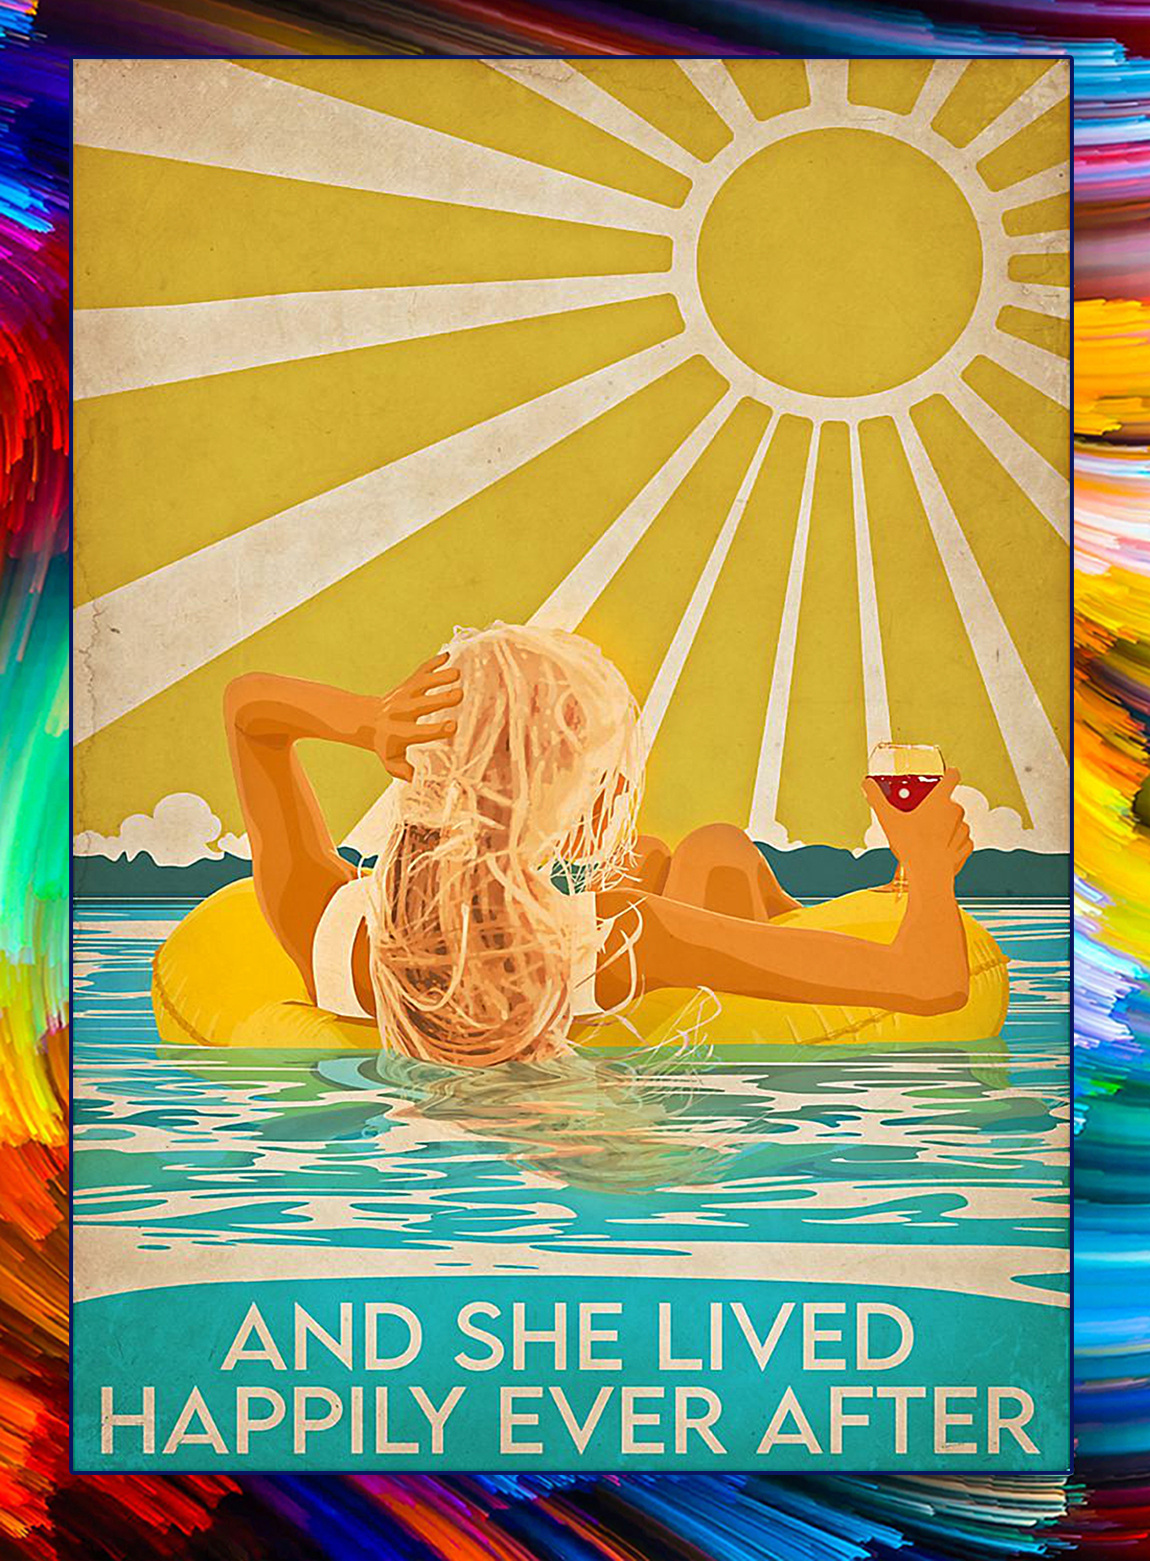 Swimming blonde girl and she lived happily after poster - A3